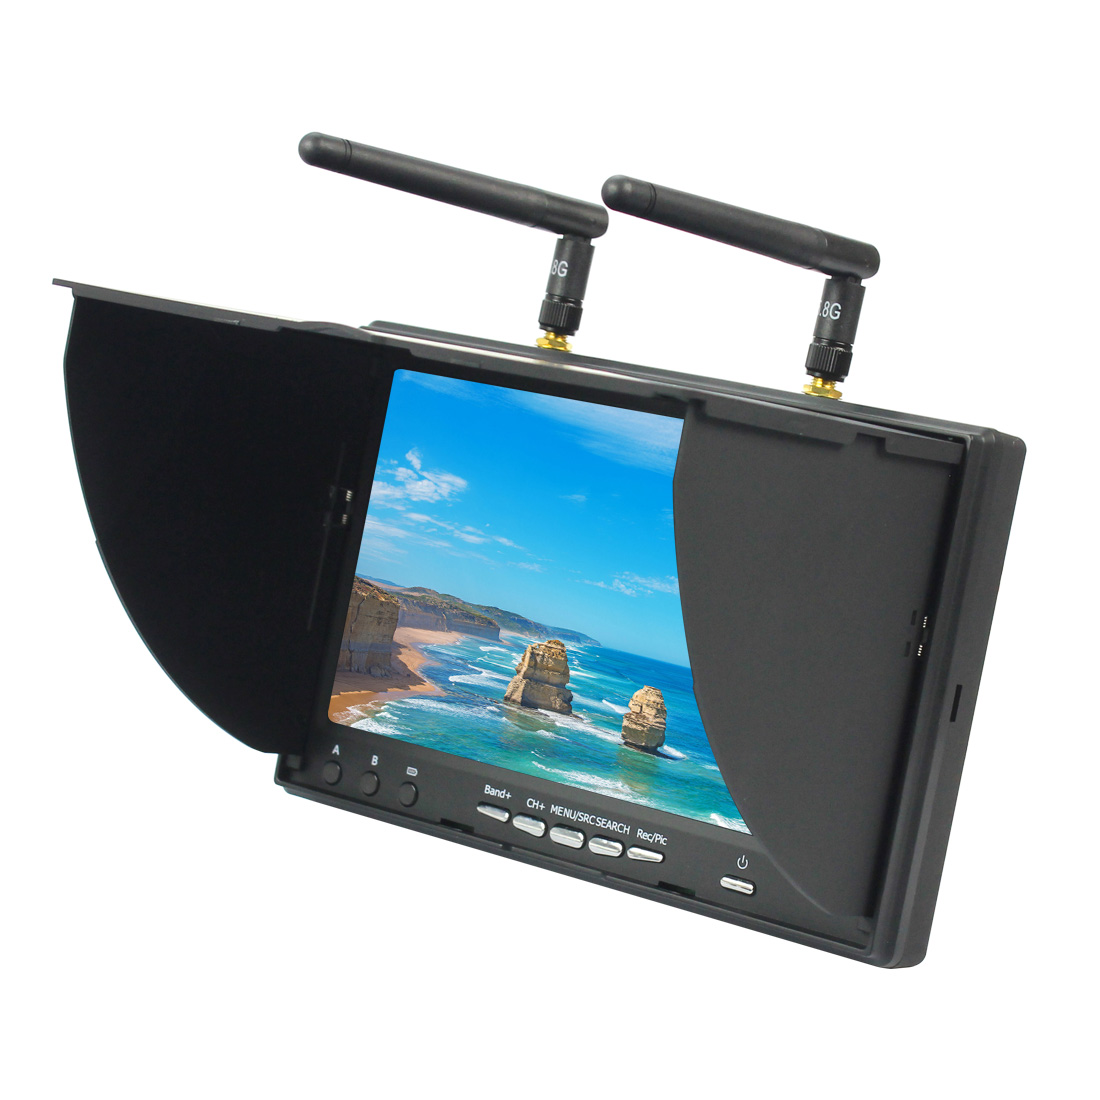 JMT LS-5802D 5.8G FPV DVR 7 Inch Handheld Screen For RC Built-in Dual ReceiverModel Racer Mulitcopter Drone ArplaneJMT LS-5802D 5.8G FPV DVR 7 Inch Handheld Screen For RC Built-in Dual ReceiverModel Racer Mulitcopter Drone Arplane